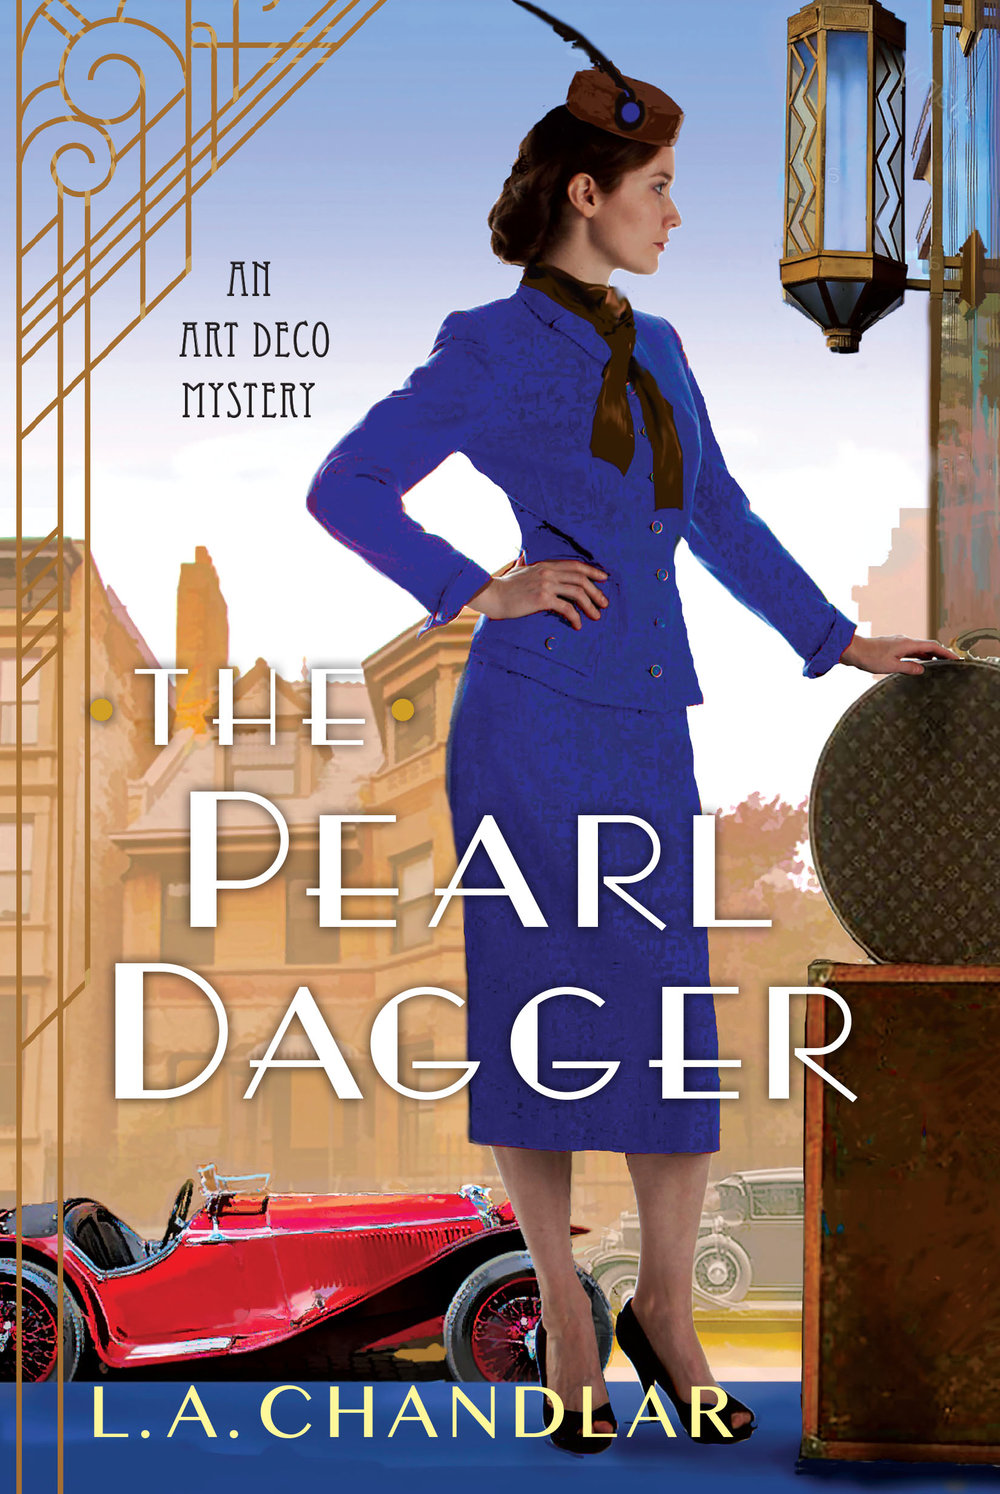 Book Three of the Art Deco Mysteries - Releasing September 2019